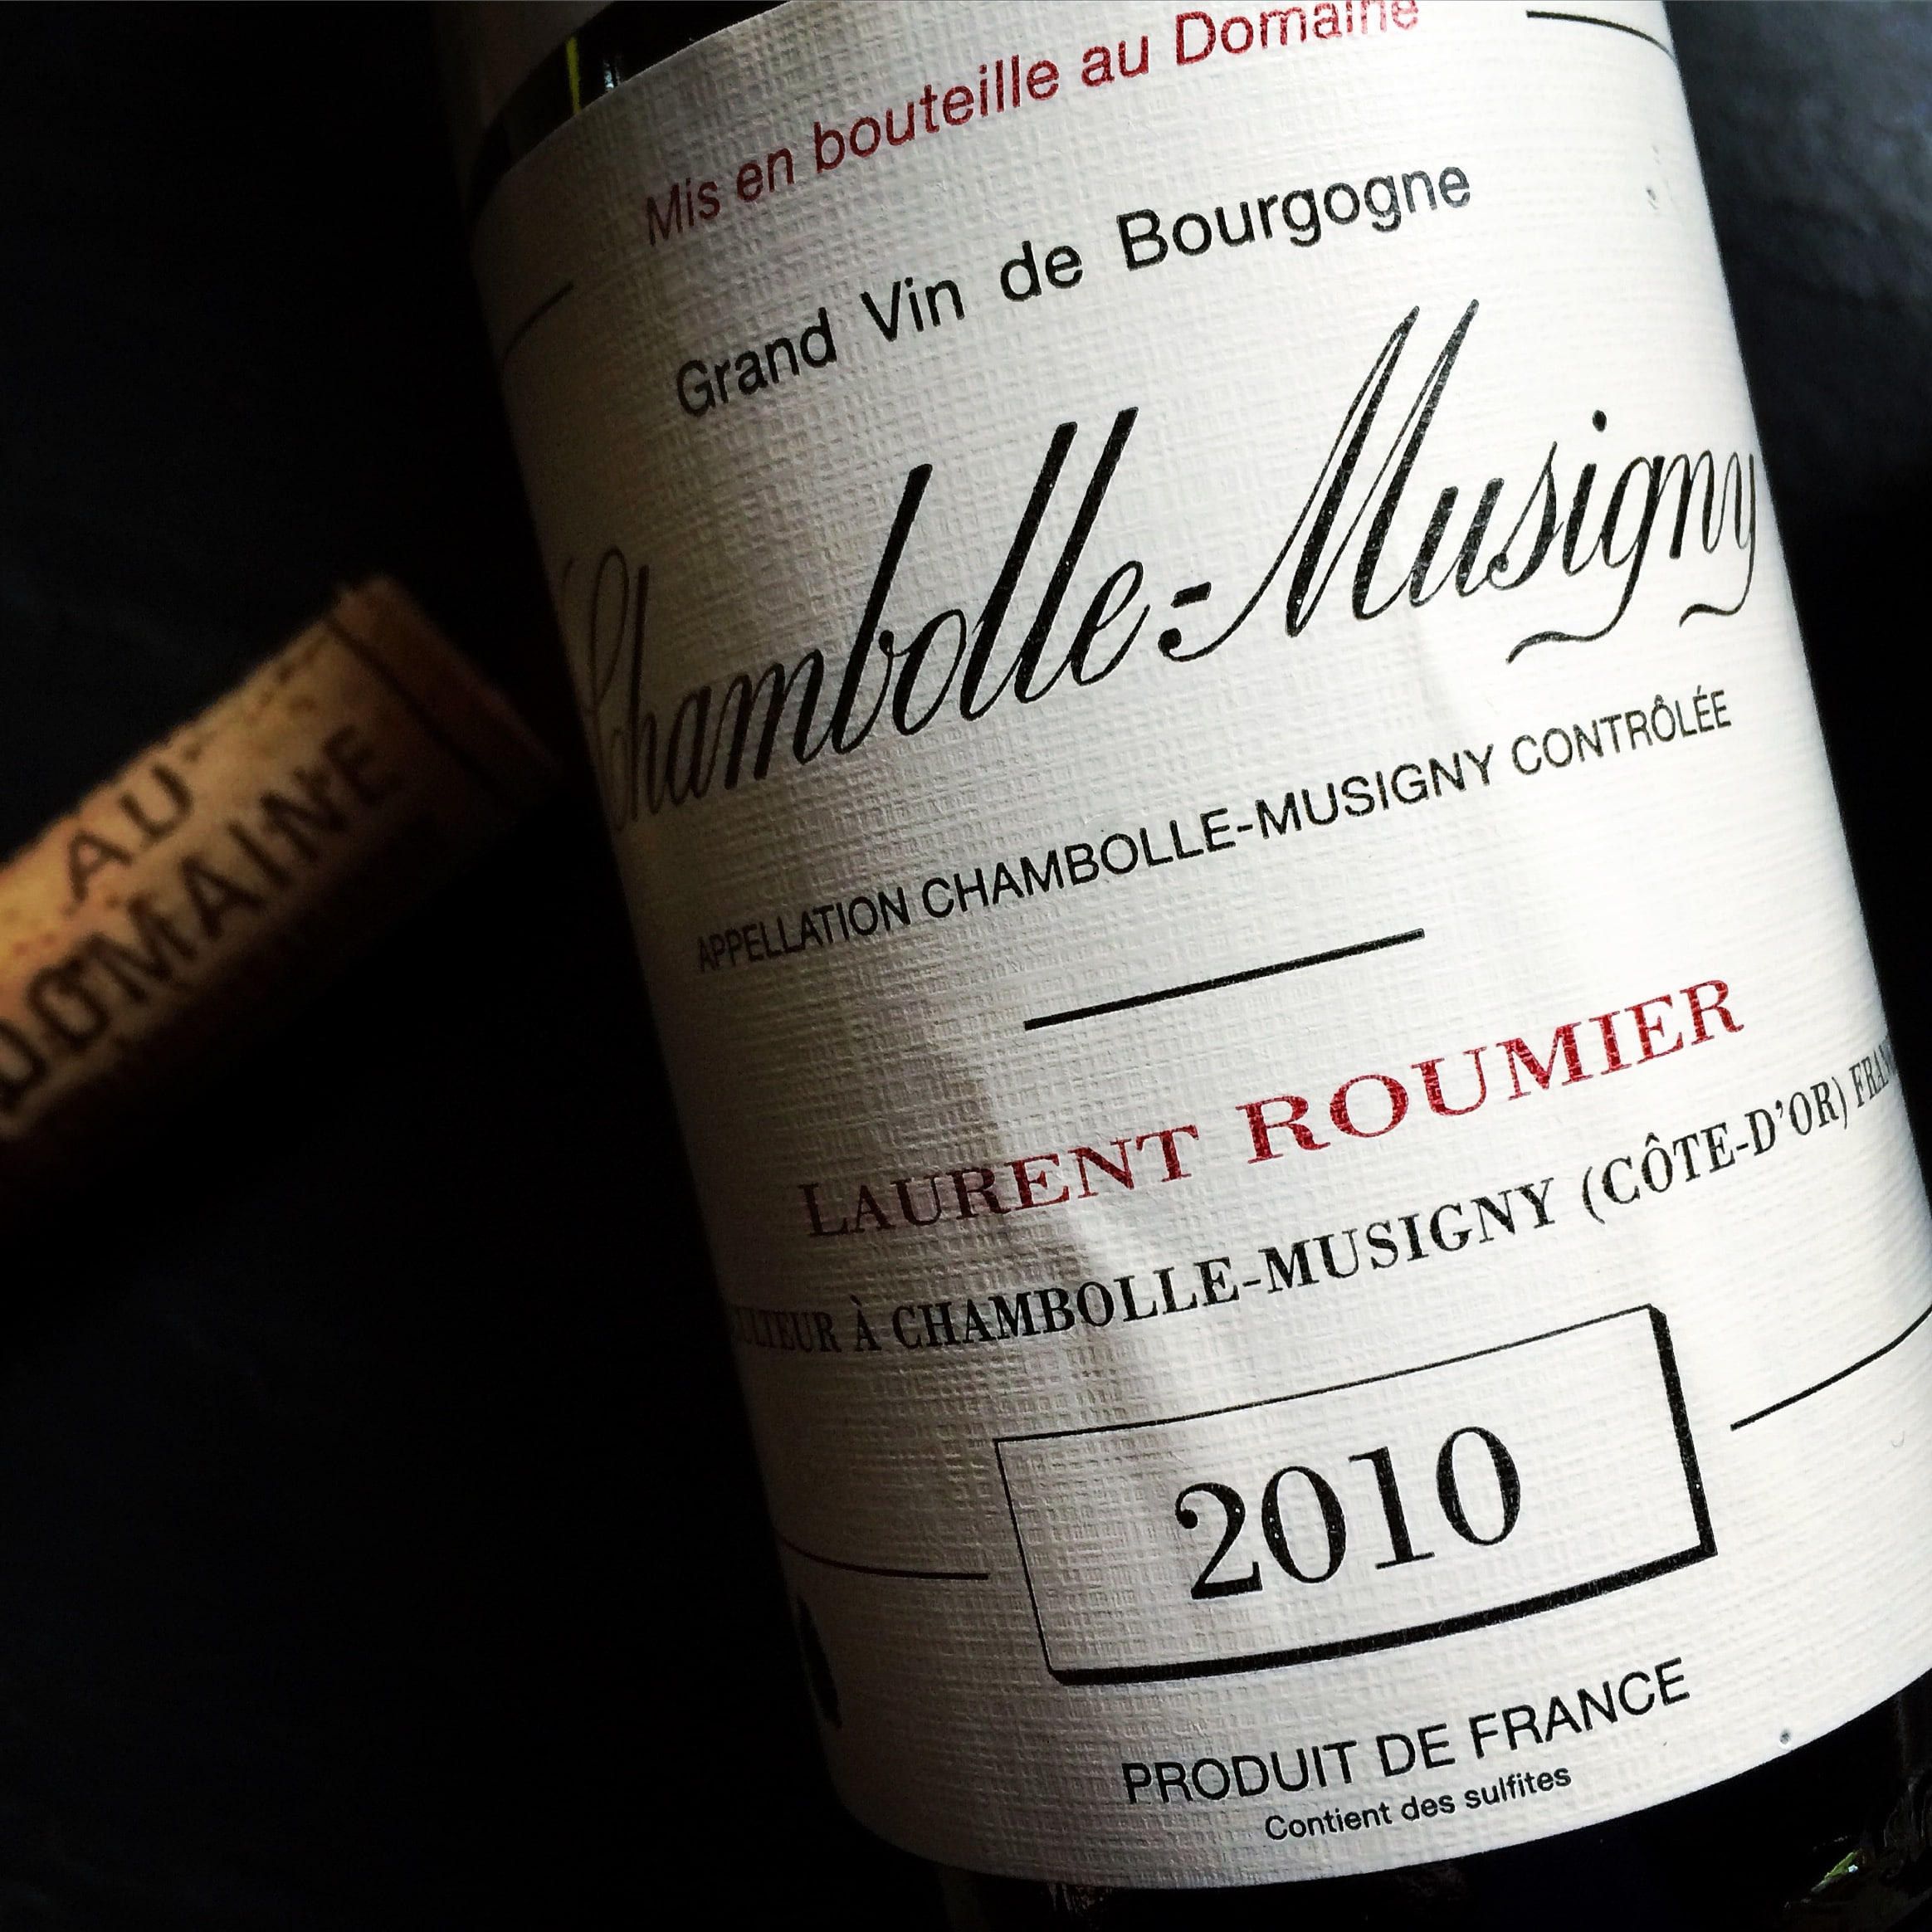 Laurent Roumier Chambolle-Musigny 2010